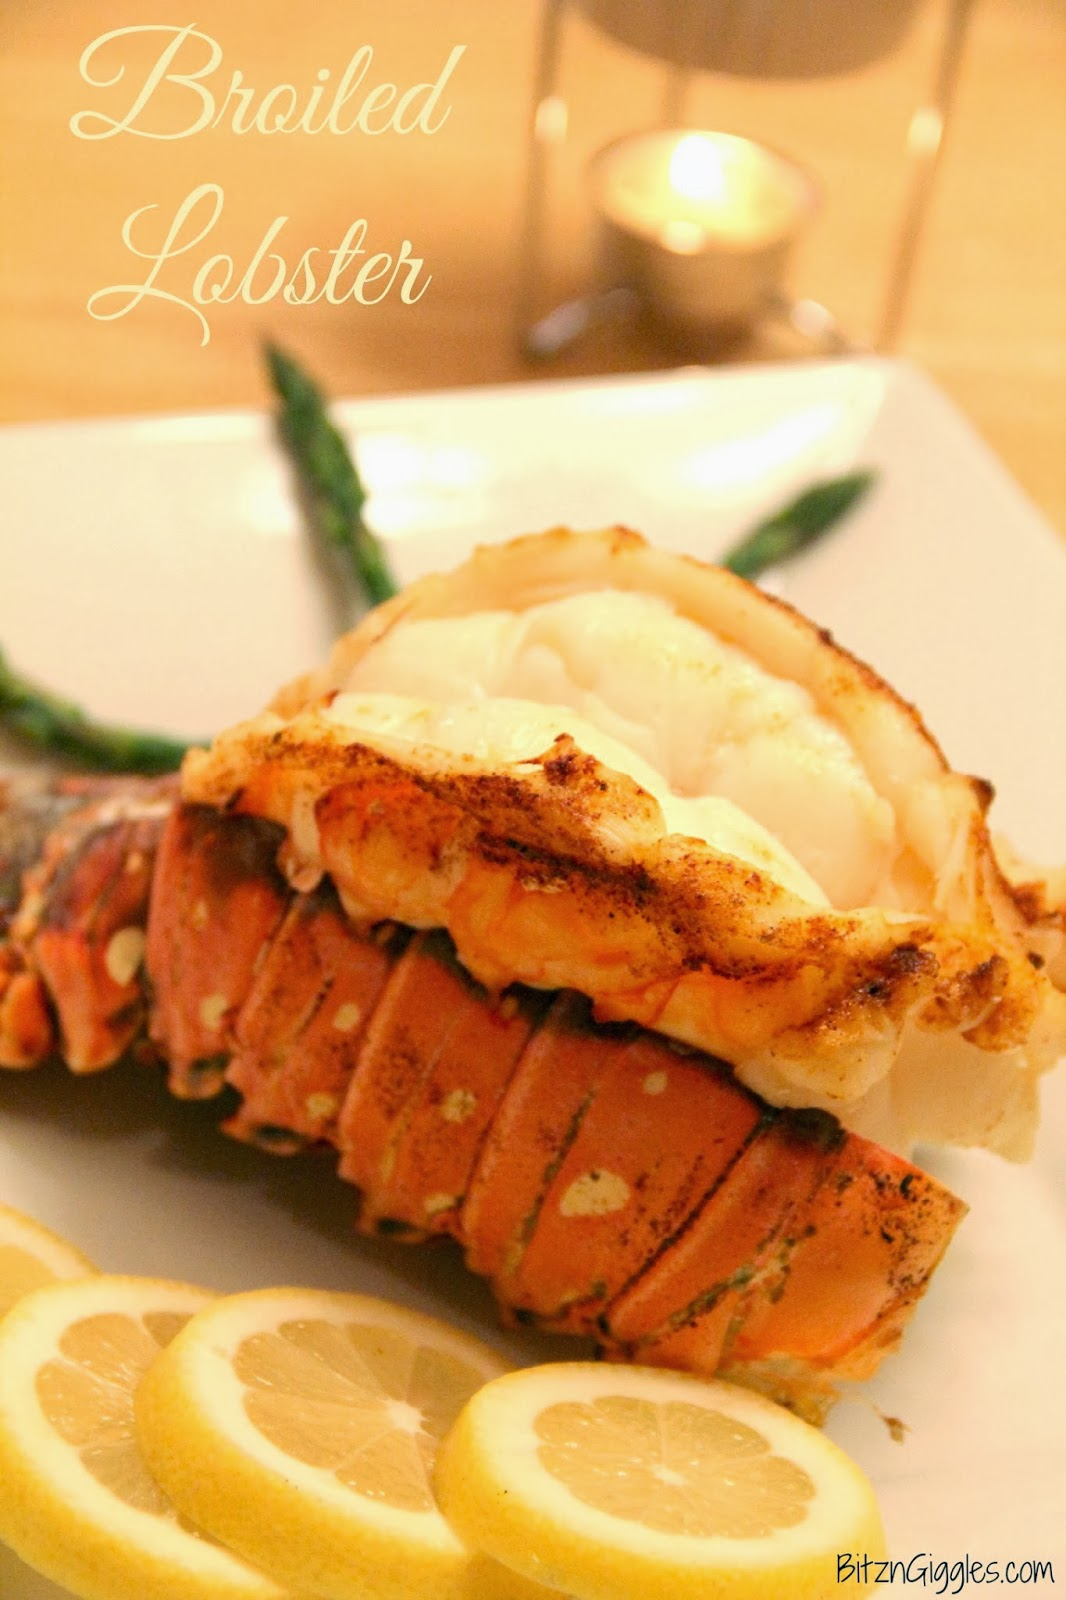 https://www.bitzngiggles.com/2014/02/broiled-lobster-tails.html